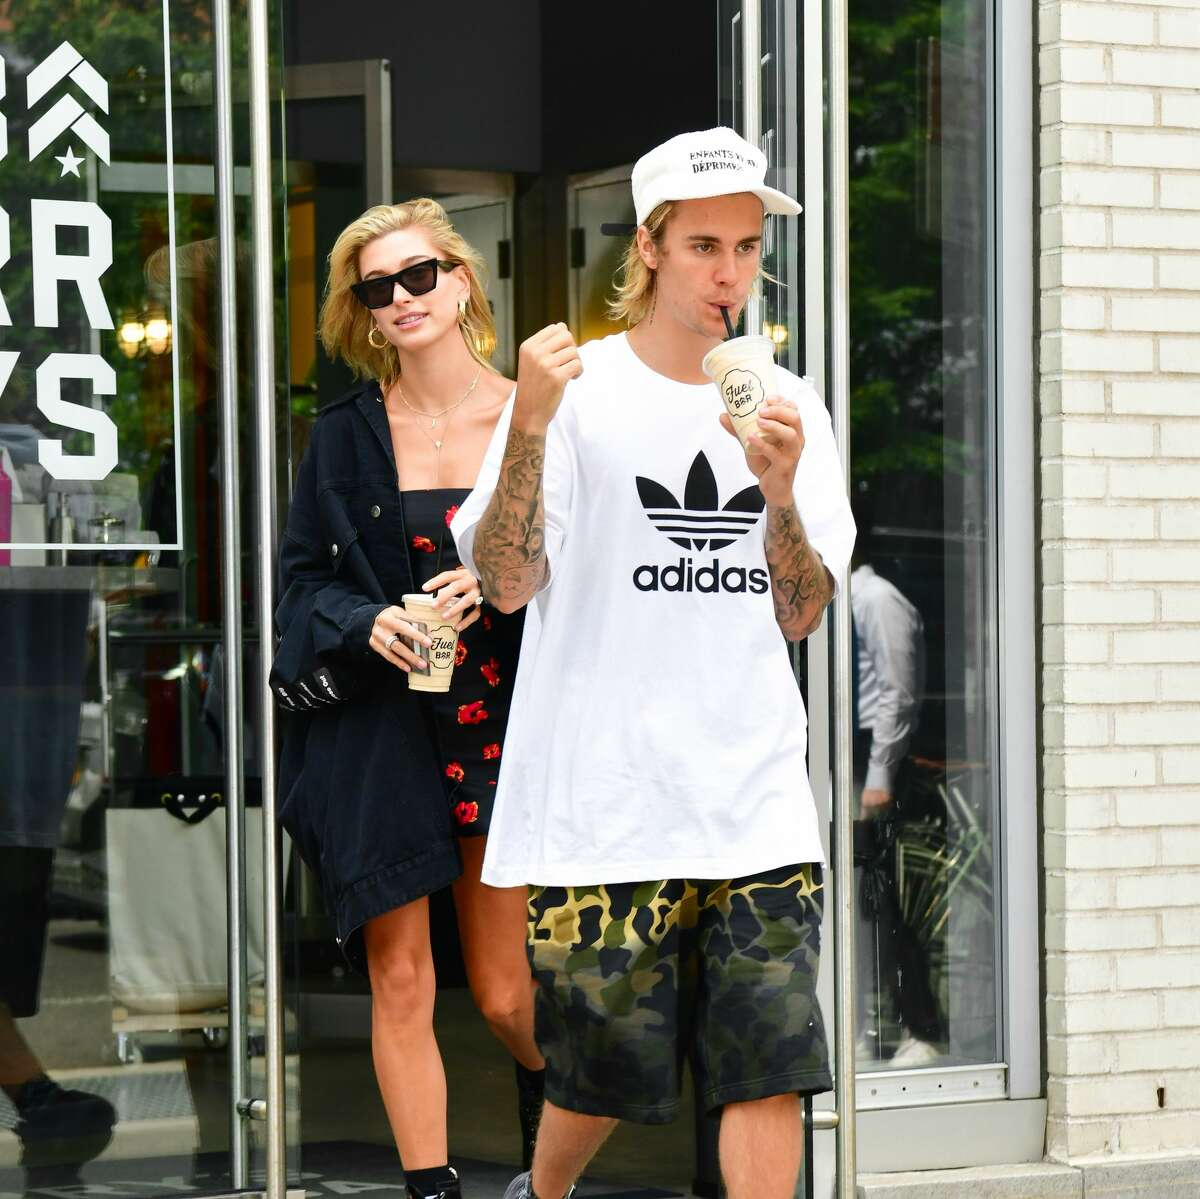 NEW YORK, NY - JULY 27: Hailey Baldwin and Justin Bieber leave Barry's Bootcamp Tribeca. (Photo by James Devaney/GC Images)